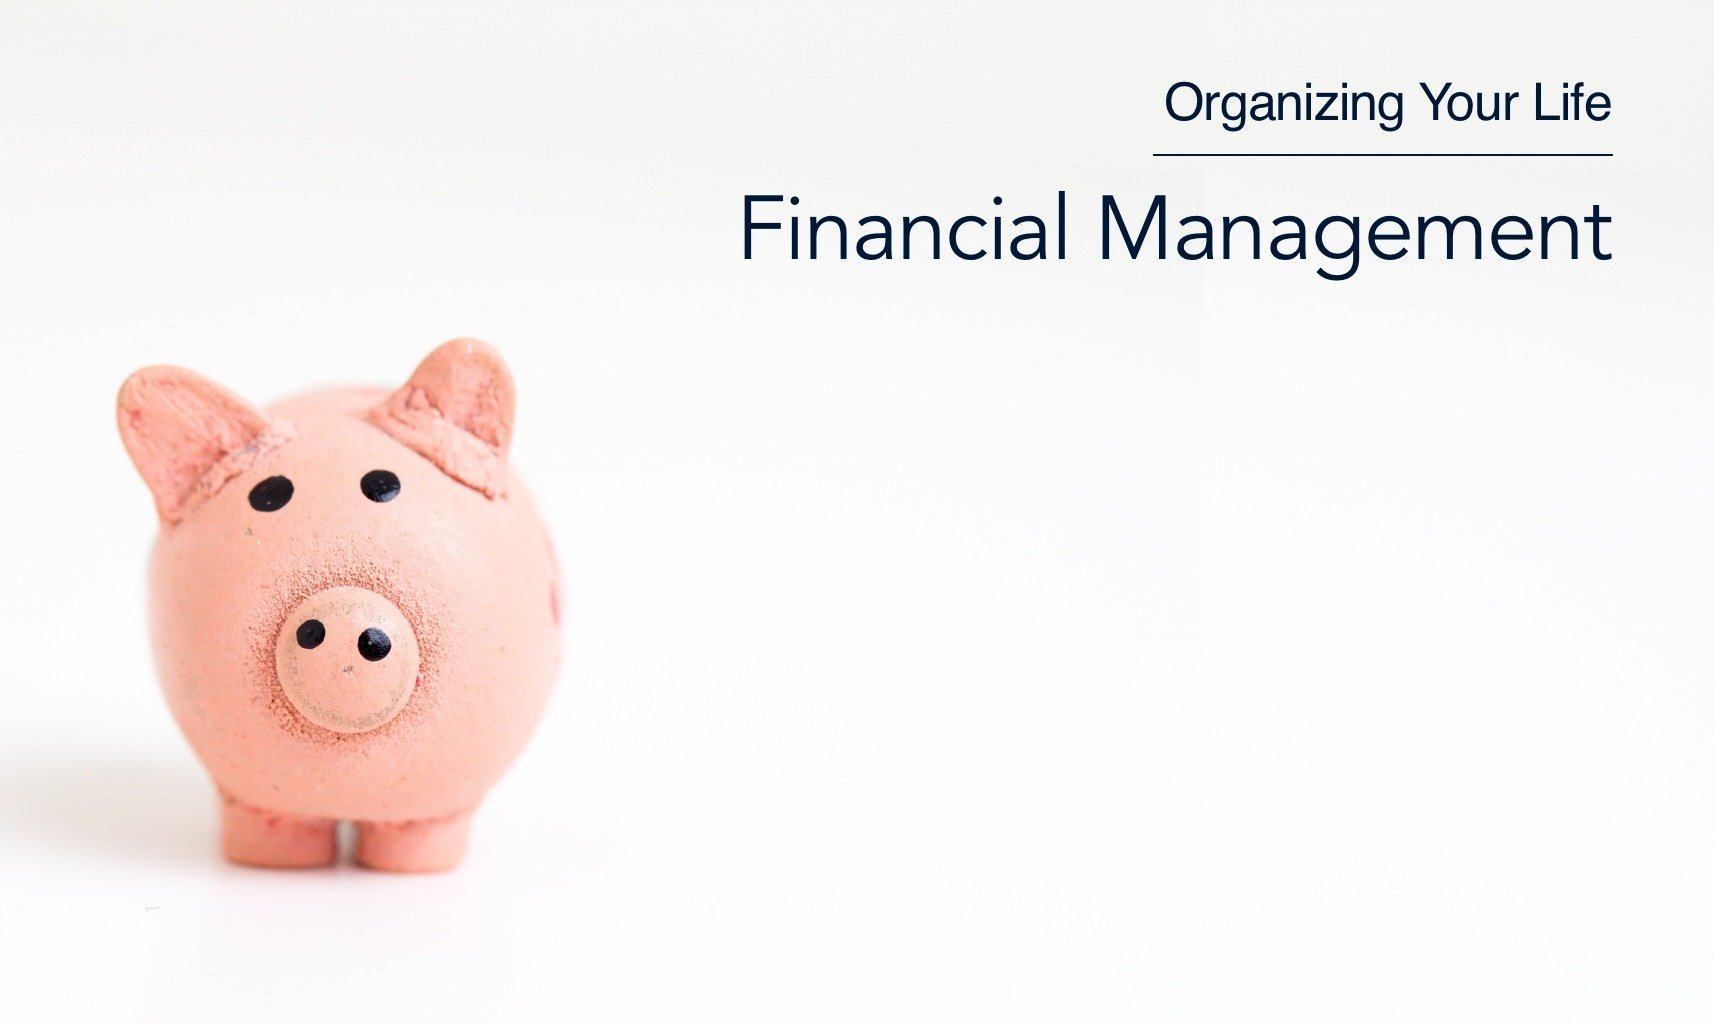 Organizing Your Life With Financial Management (Being Happier)